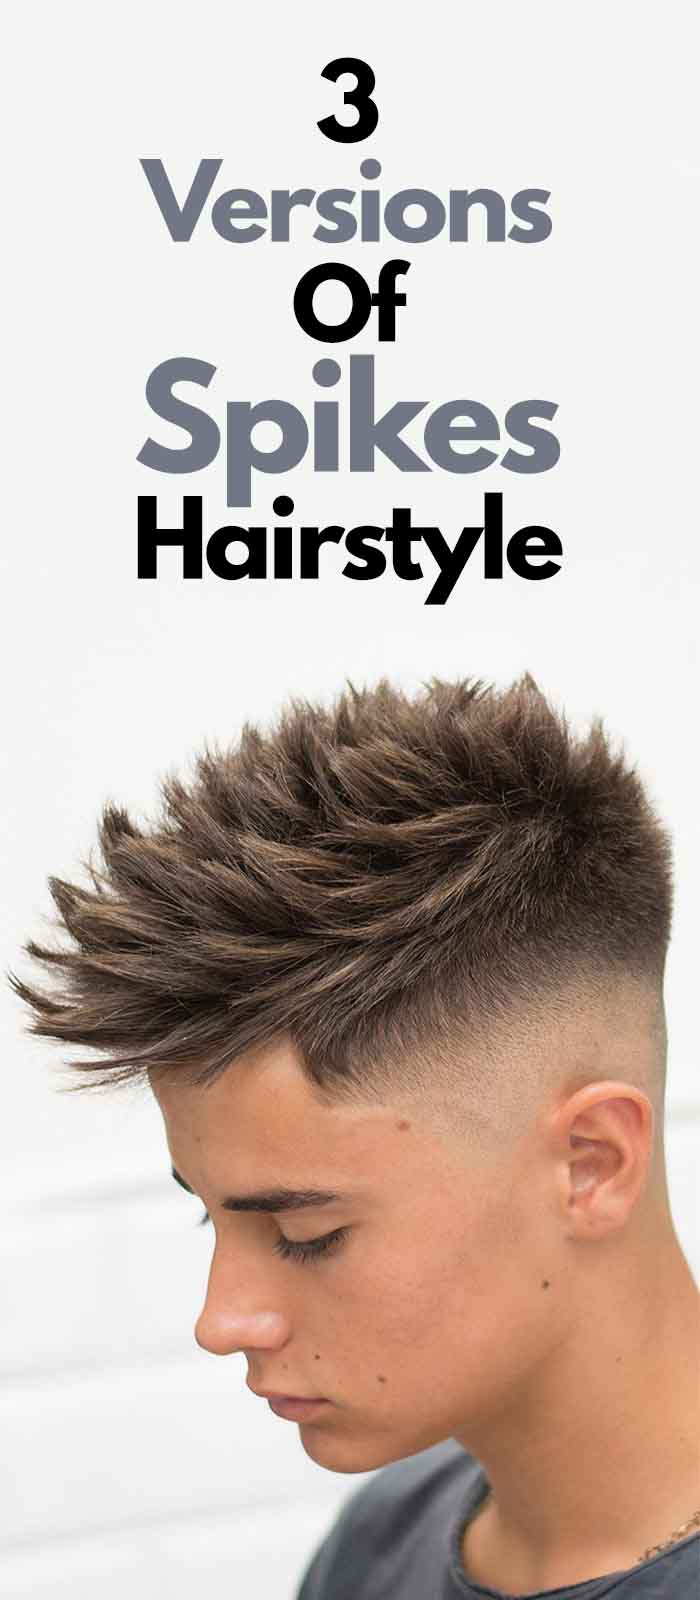 Spikes Hairstyle For Men